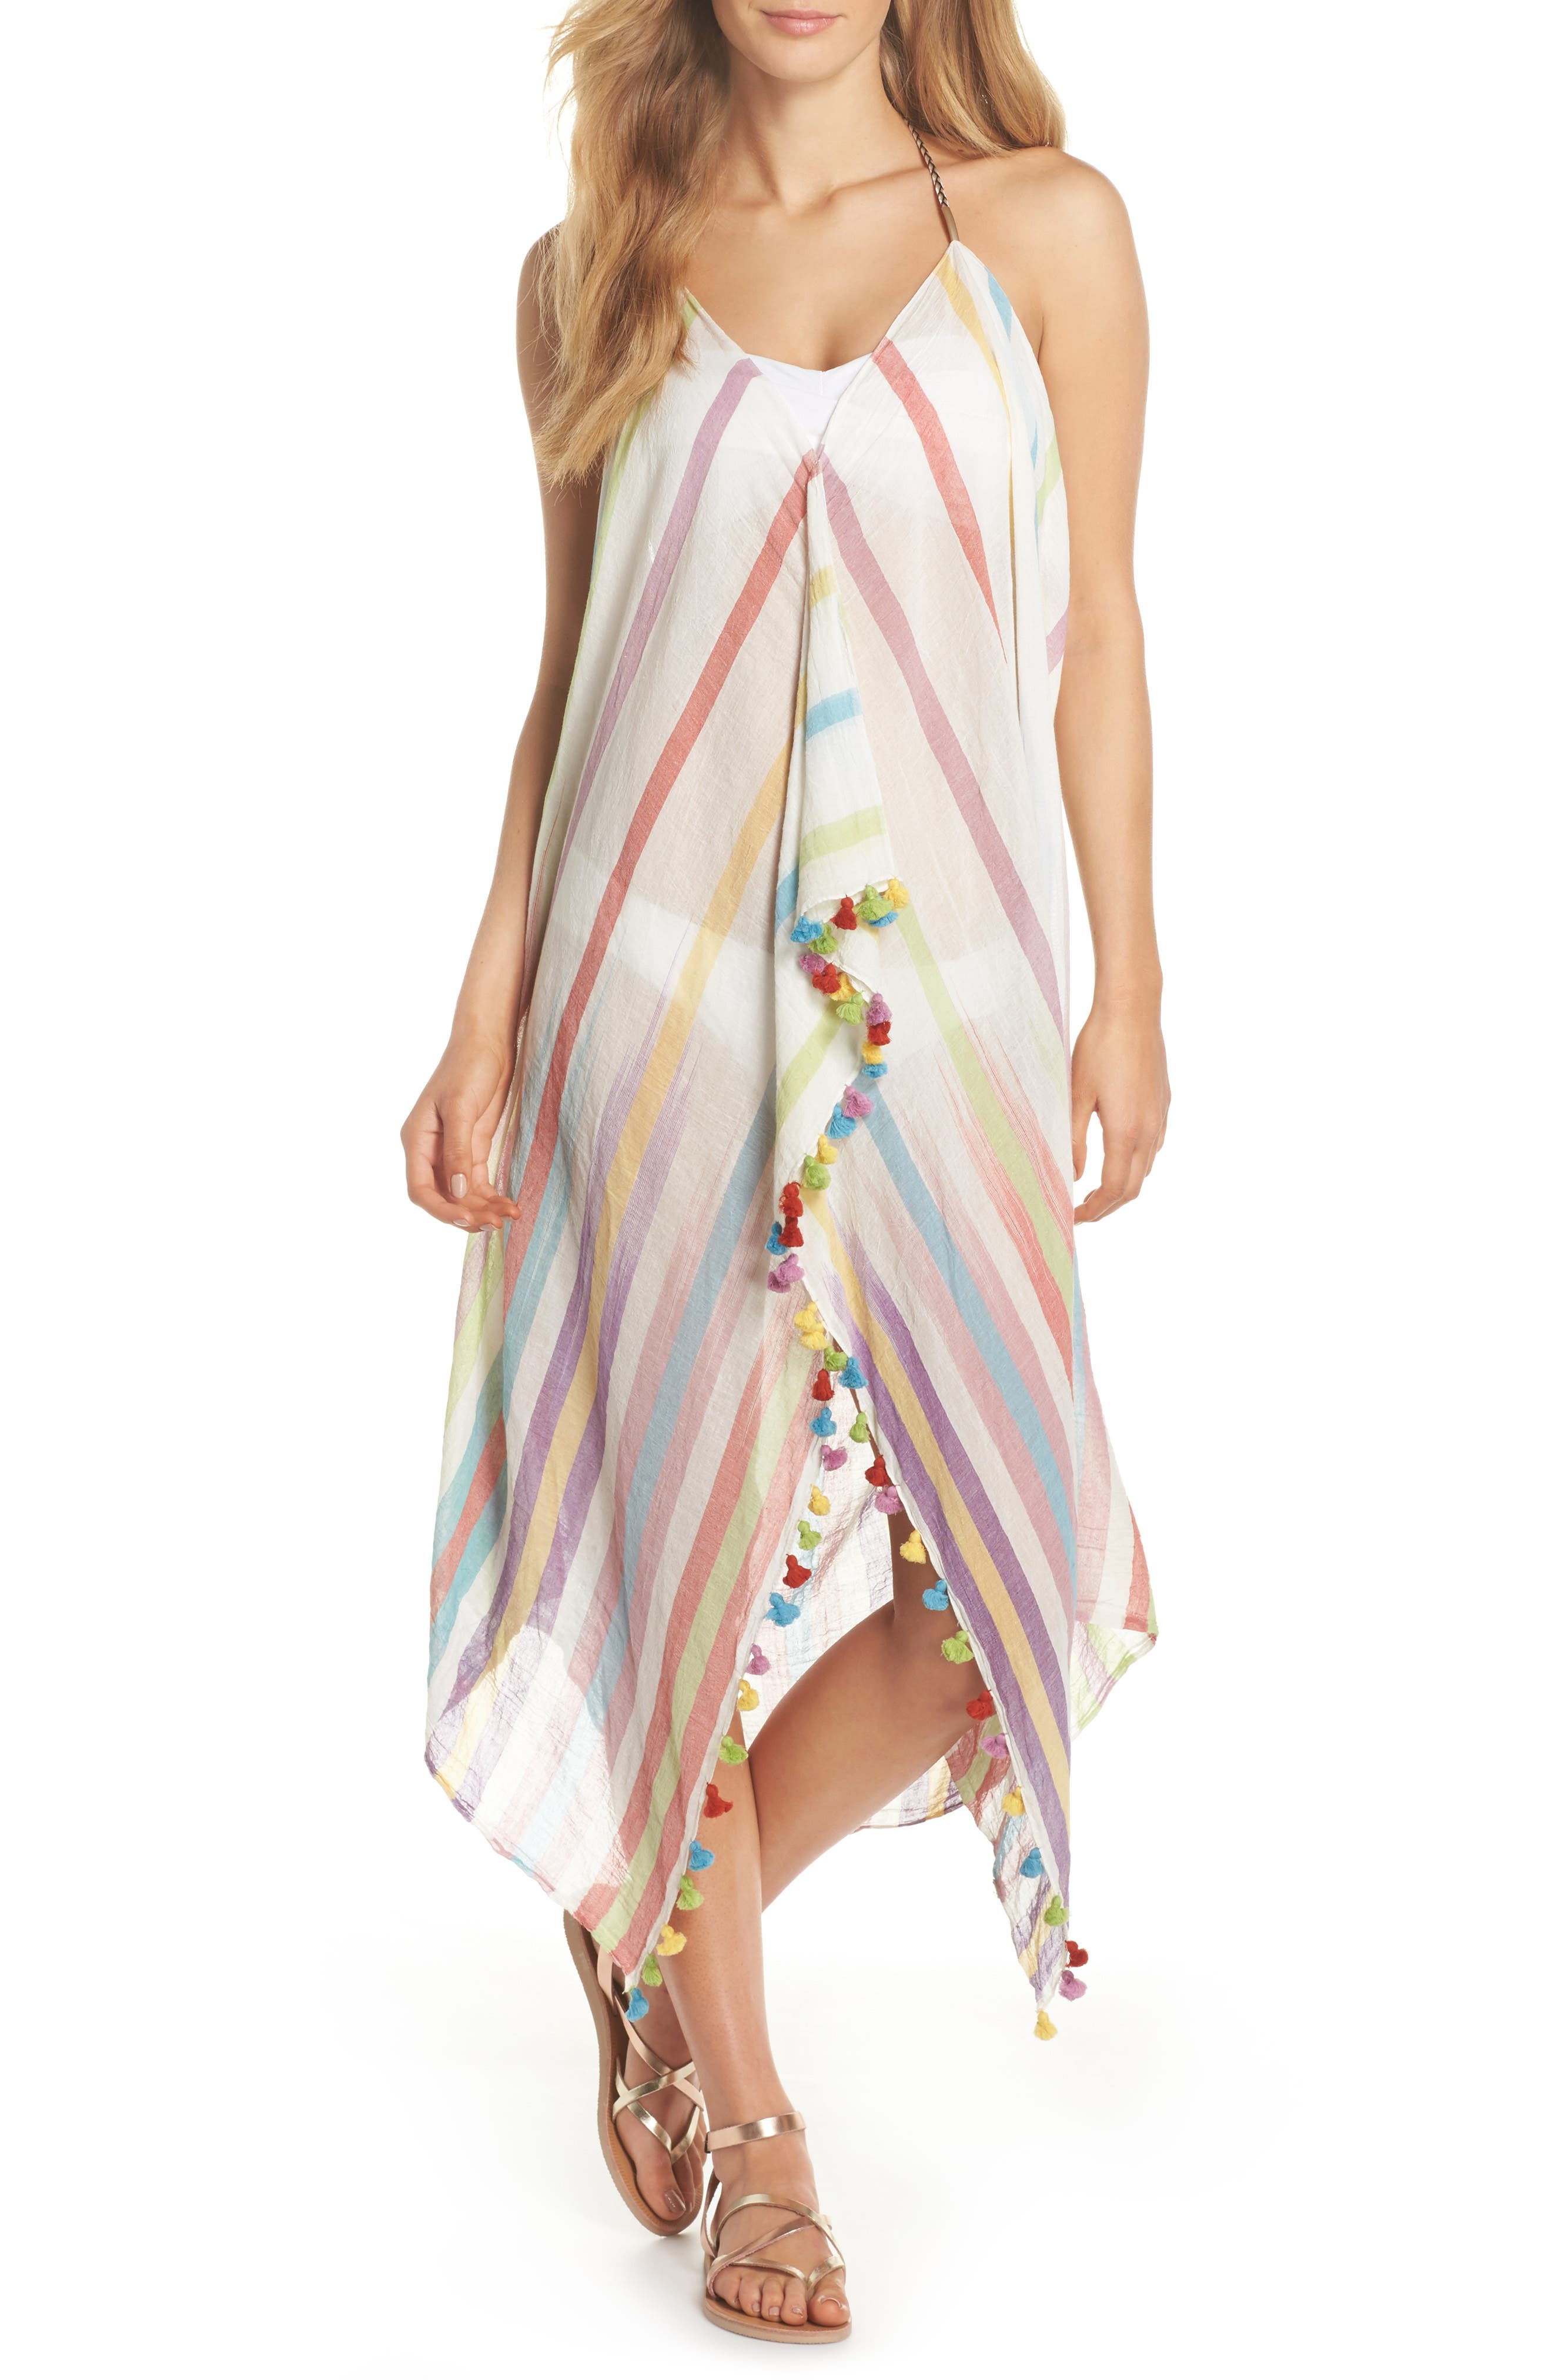 Pool Party Beach to Street Cover-Up Dress,                         Main,                         color, Rnb